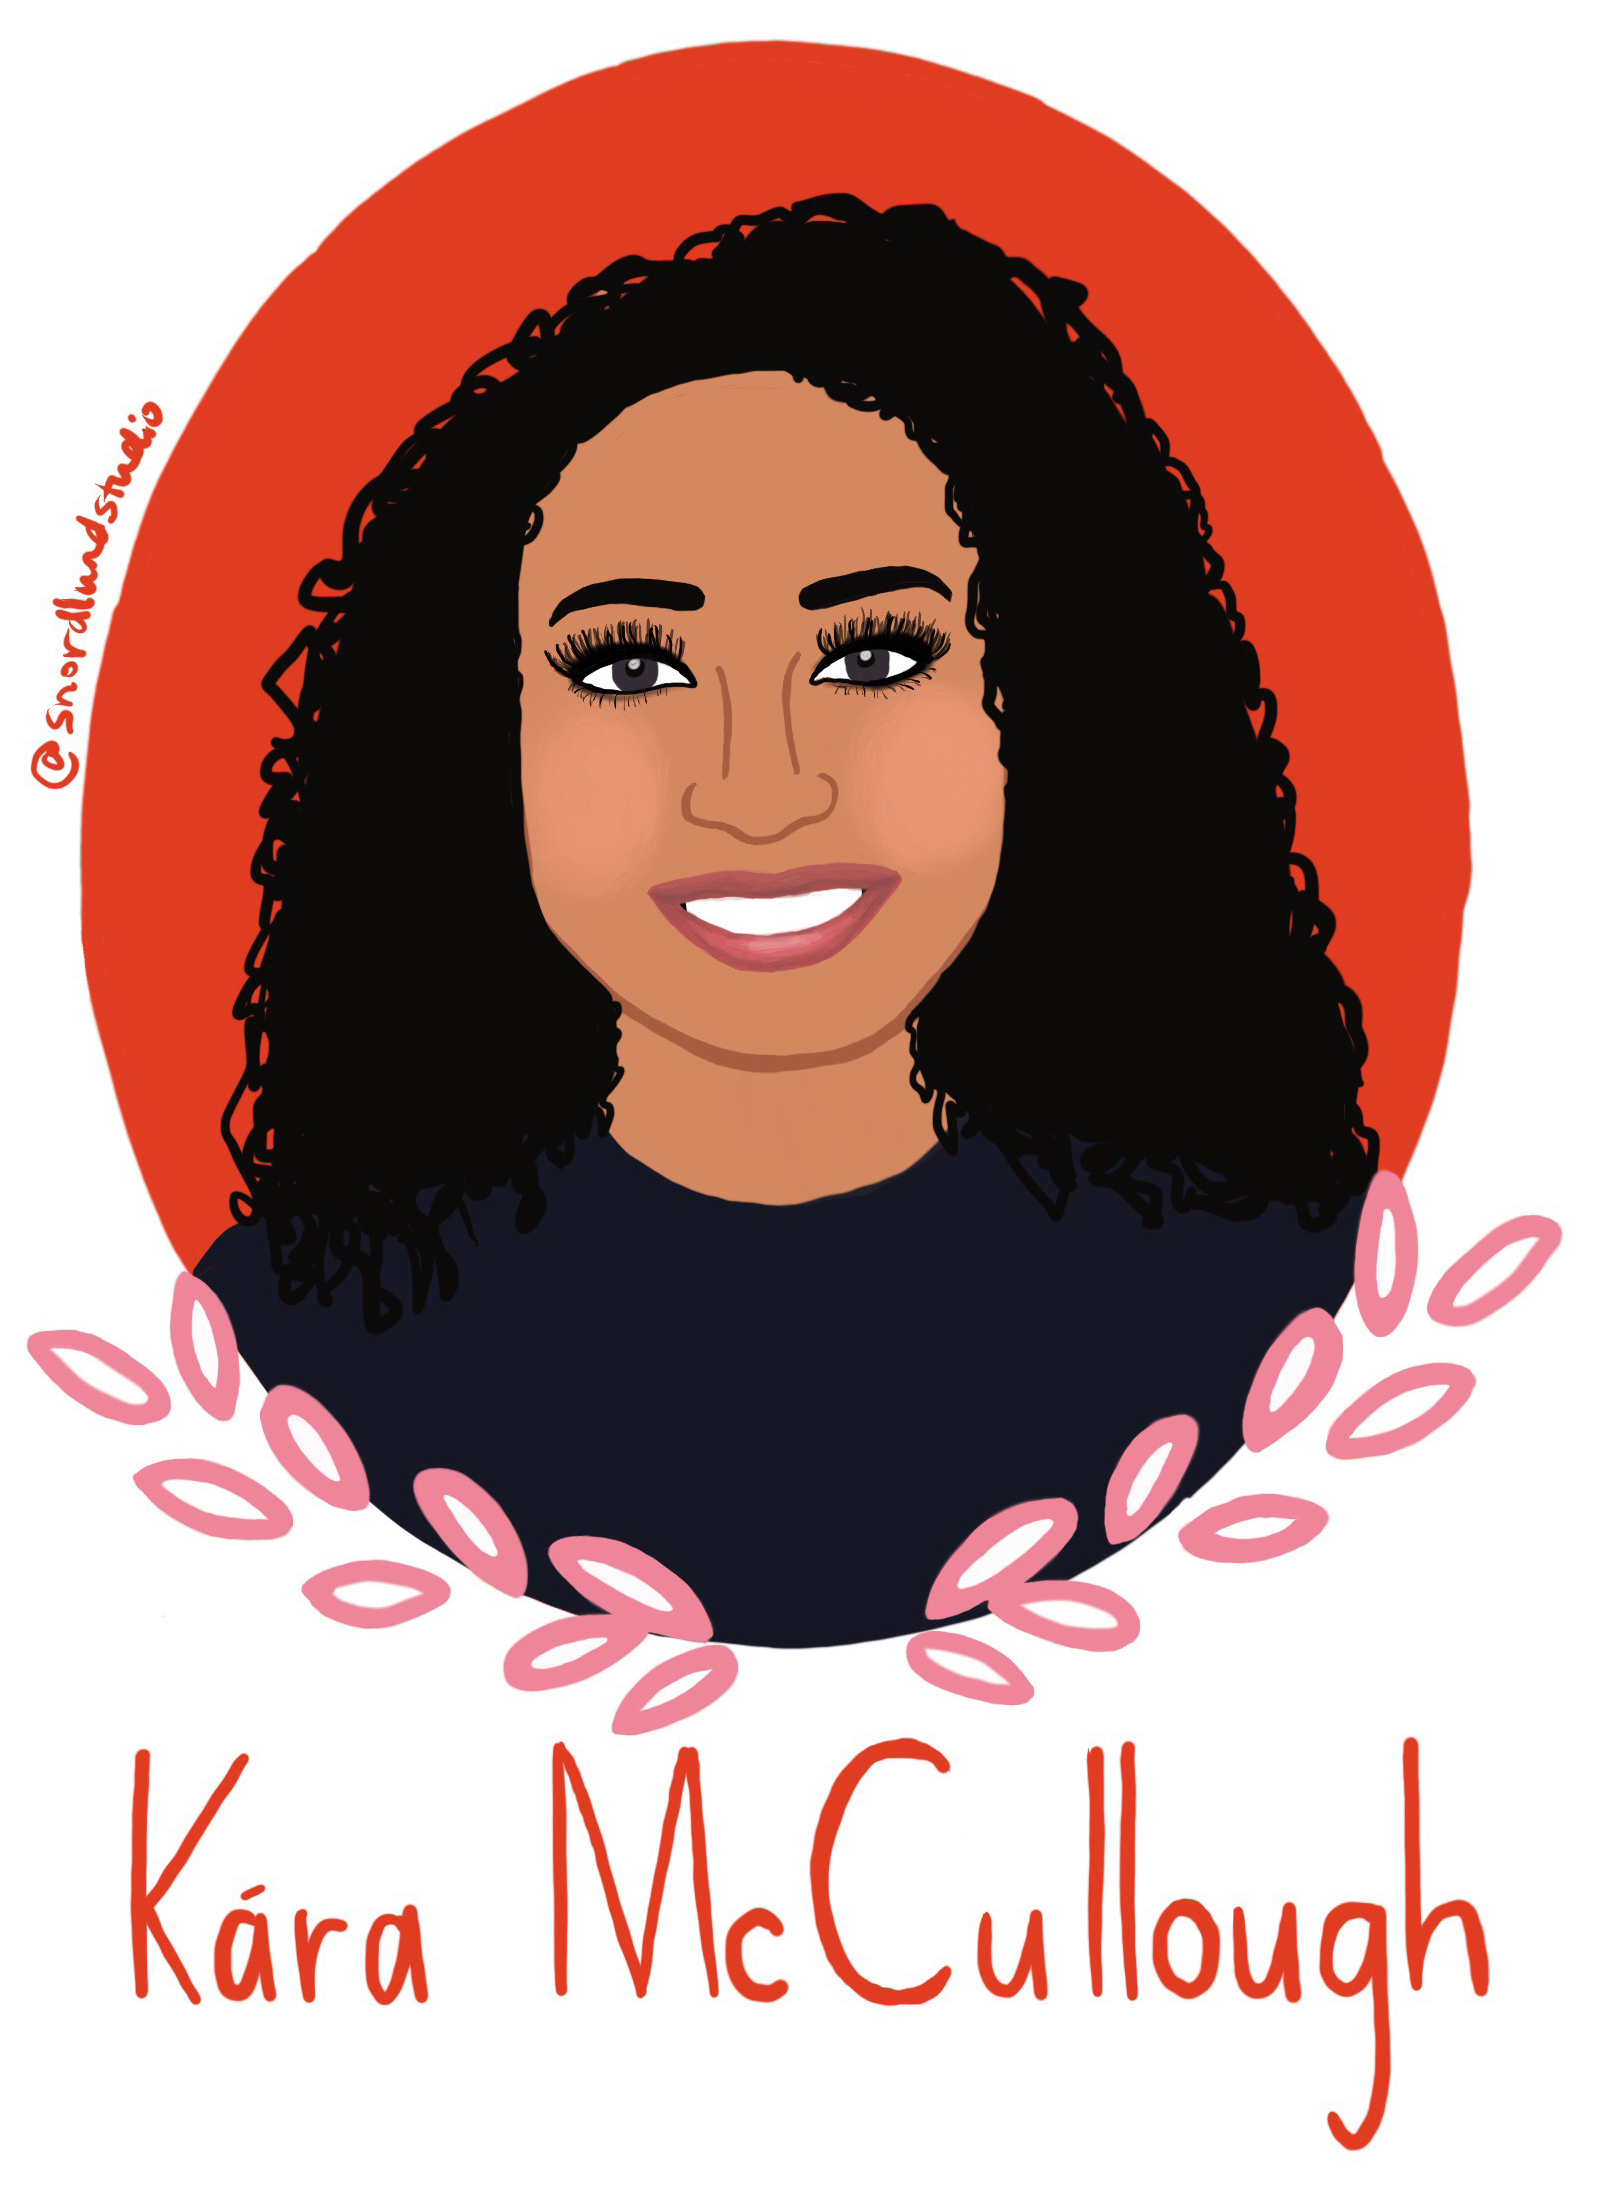 23. Kara McCullough - Kara McCullough is a scientist and Miss USA 2017. McCullough has worked as an emergency preparedness specialist.